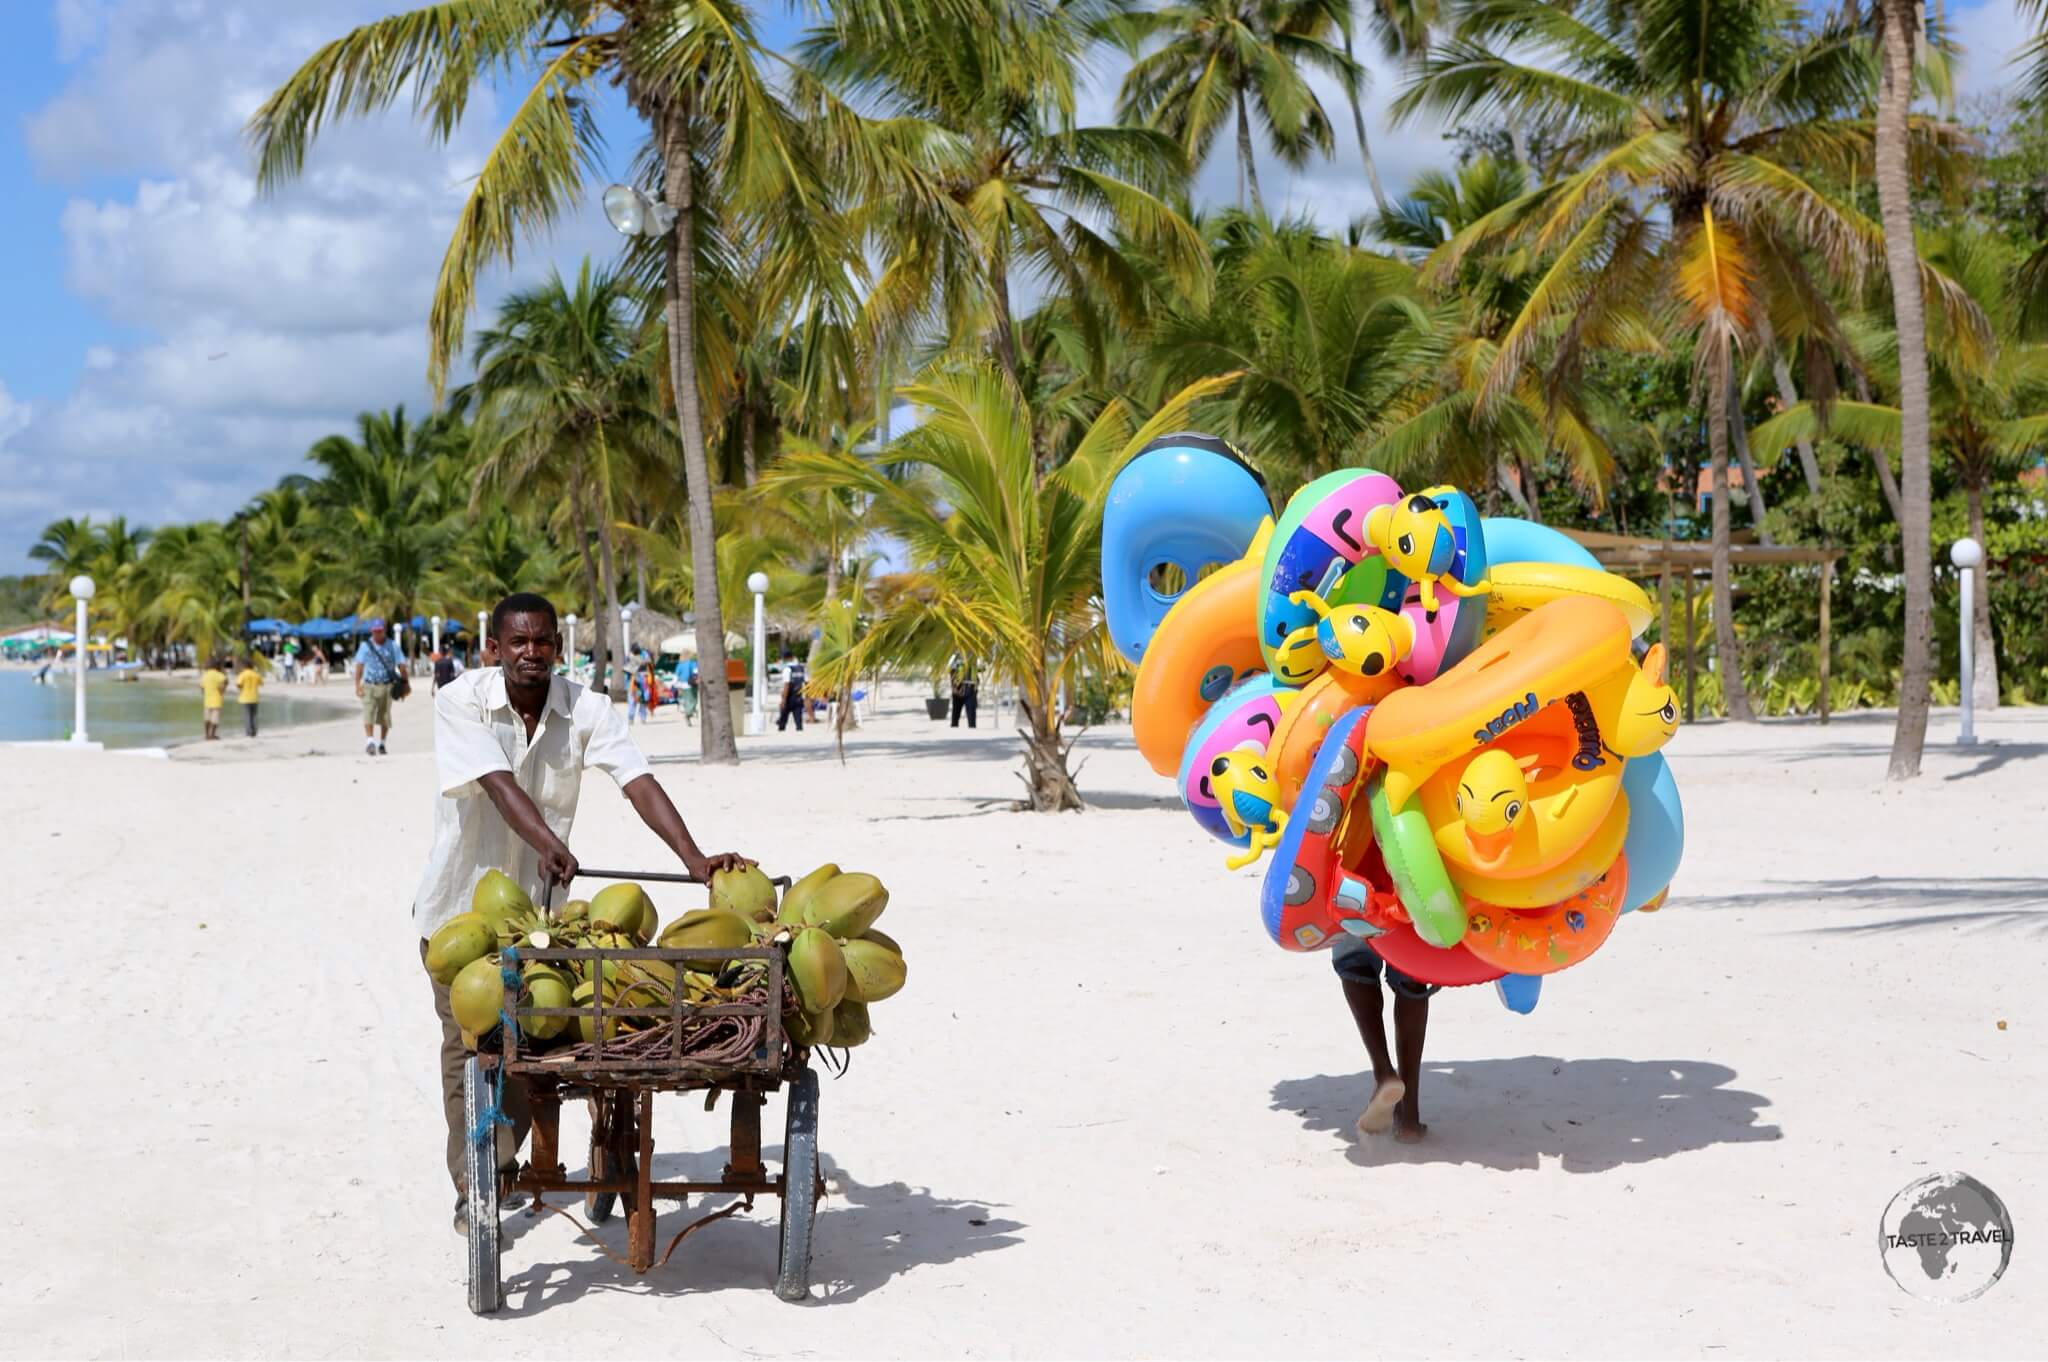 Vendors on the beach at Boca Chica.